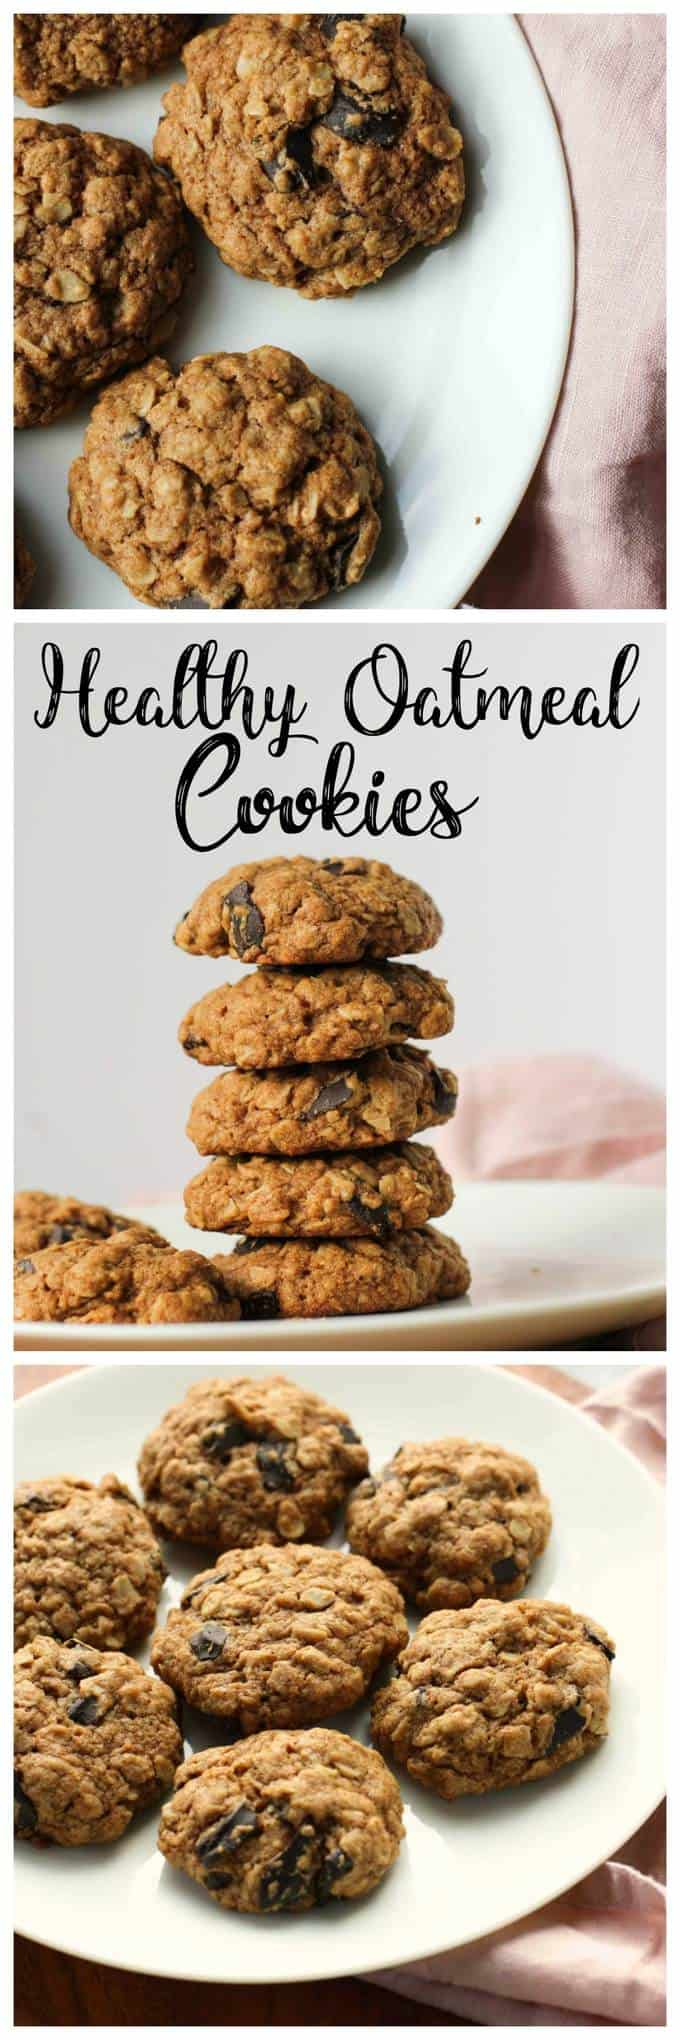 Healthier Oatmeal Cookies I Heart Vegetables